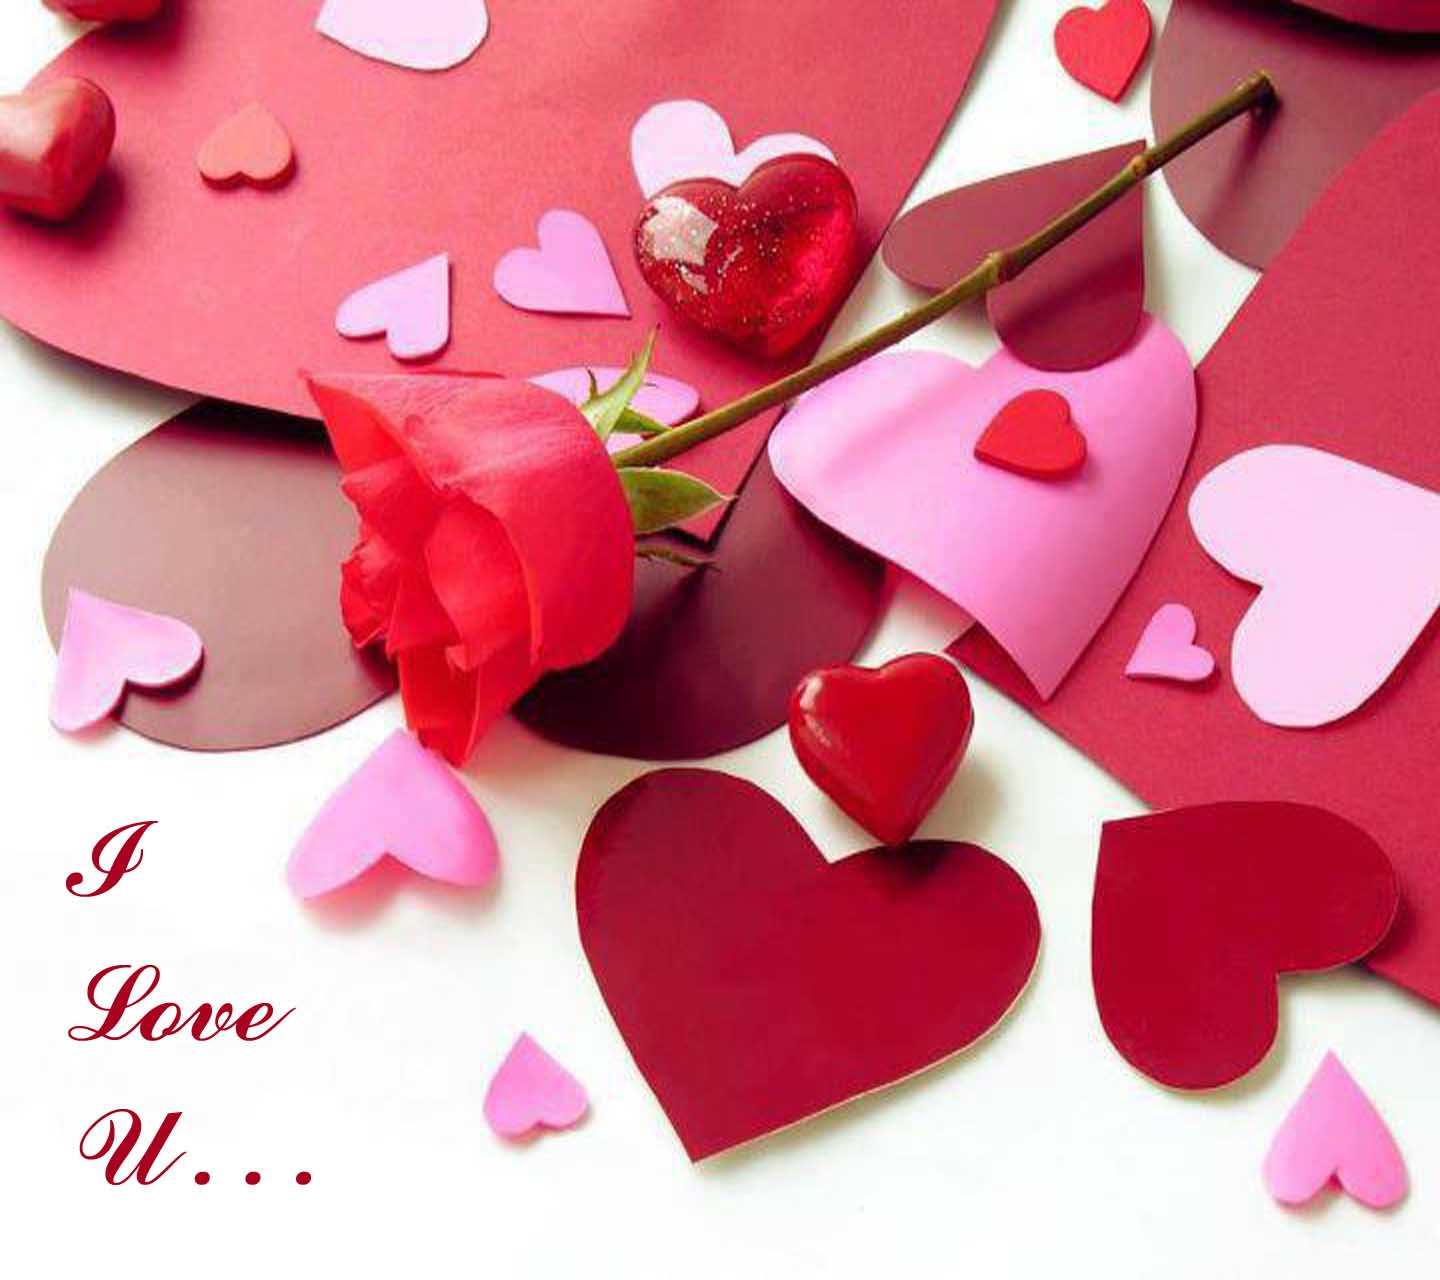 i love u heart wallpaper image download hd free